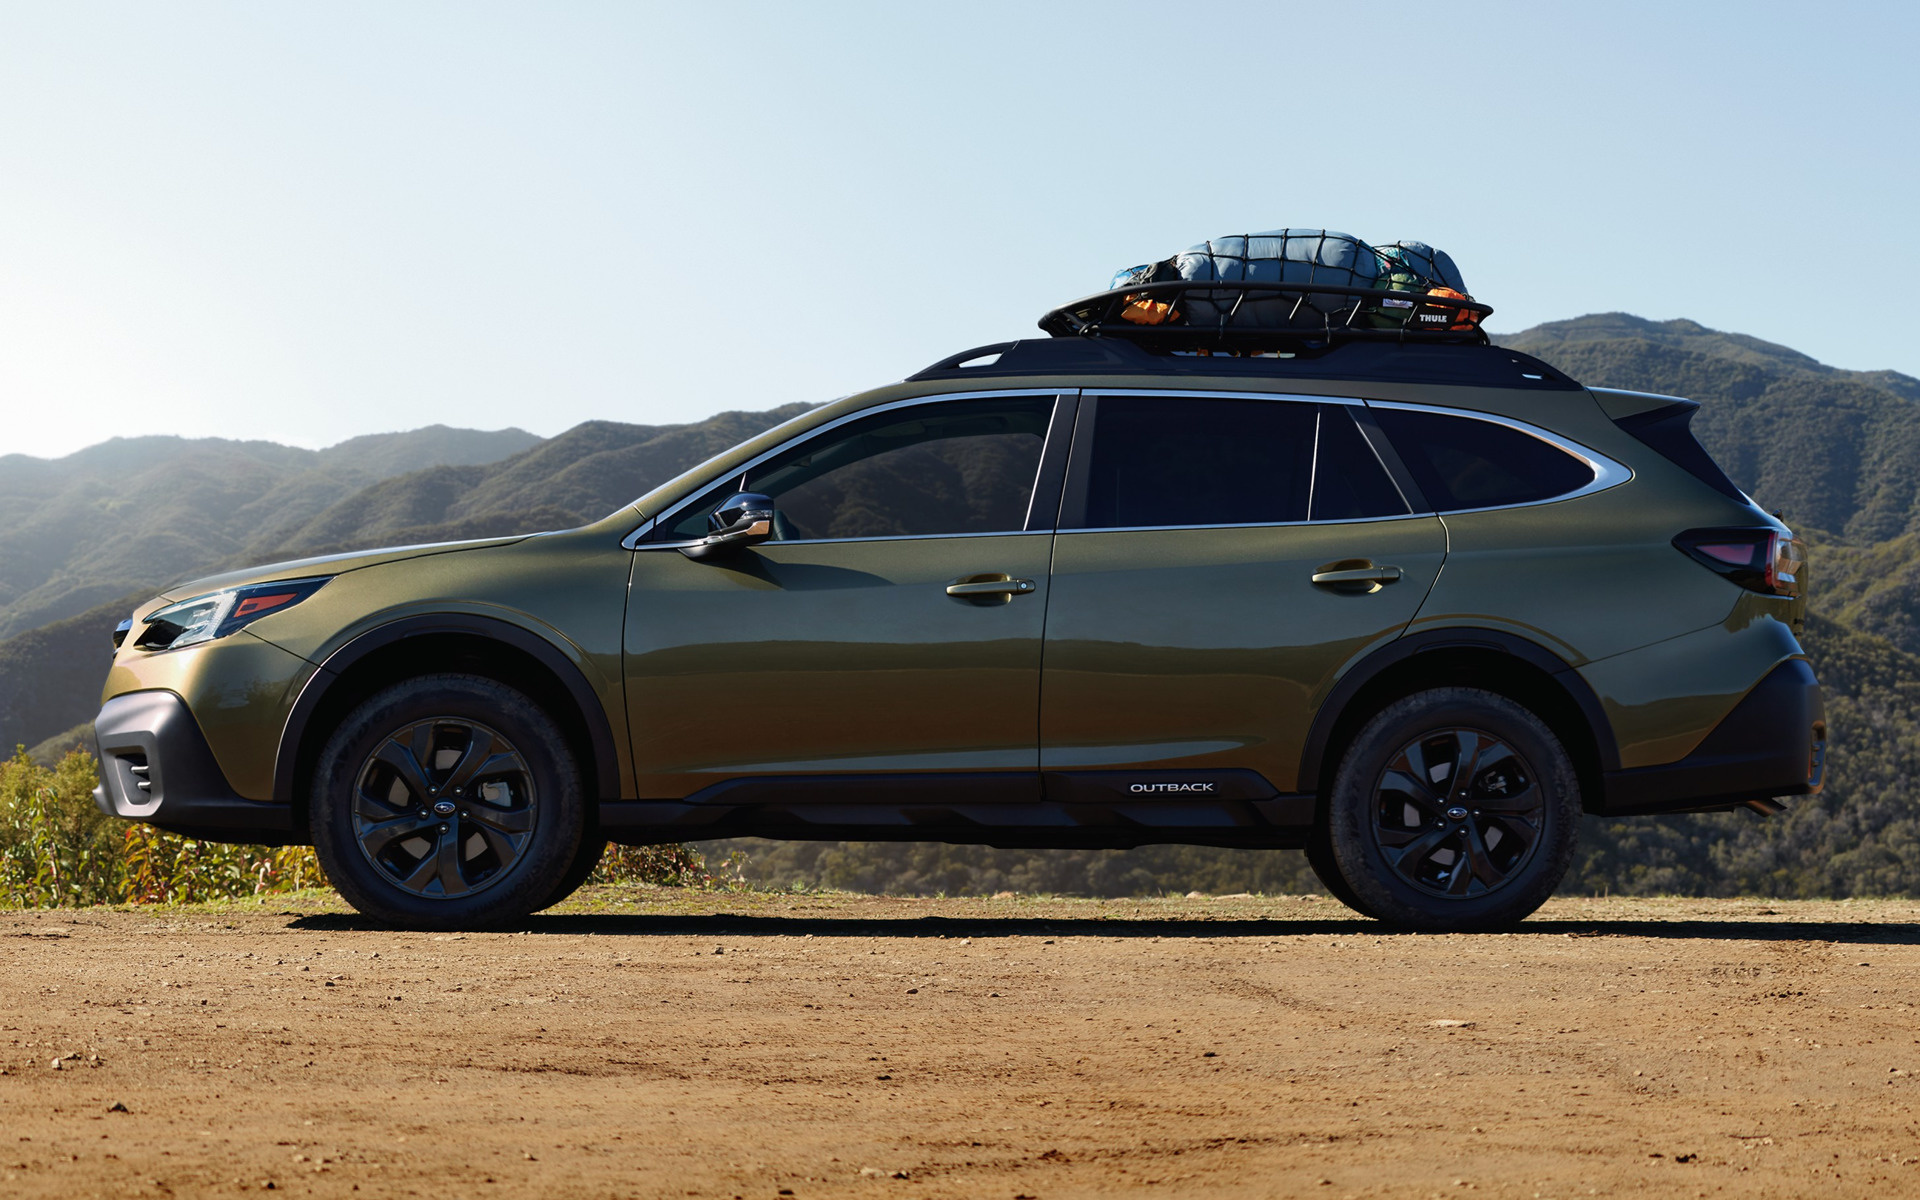 2020 subaru outback xt onyx edition wallpapers and hd images car pixel 2020 subaru outback xt onyx edition